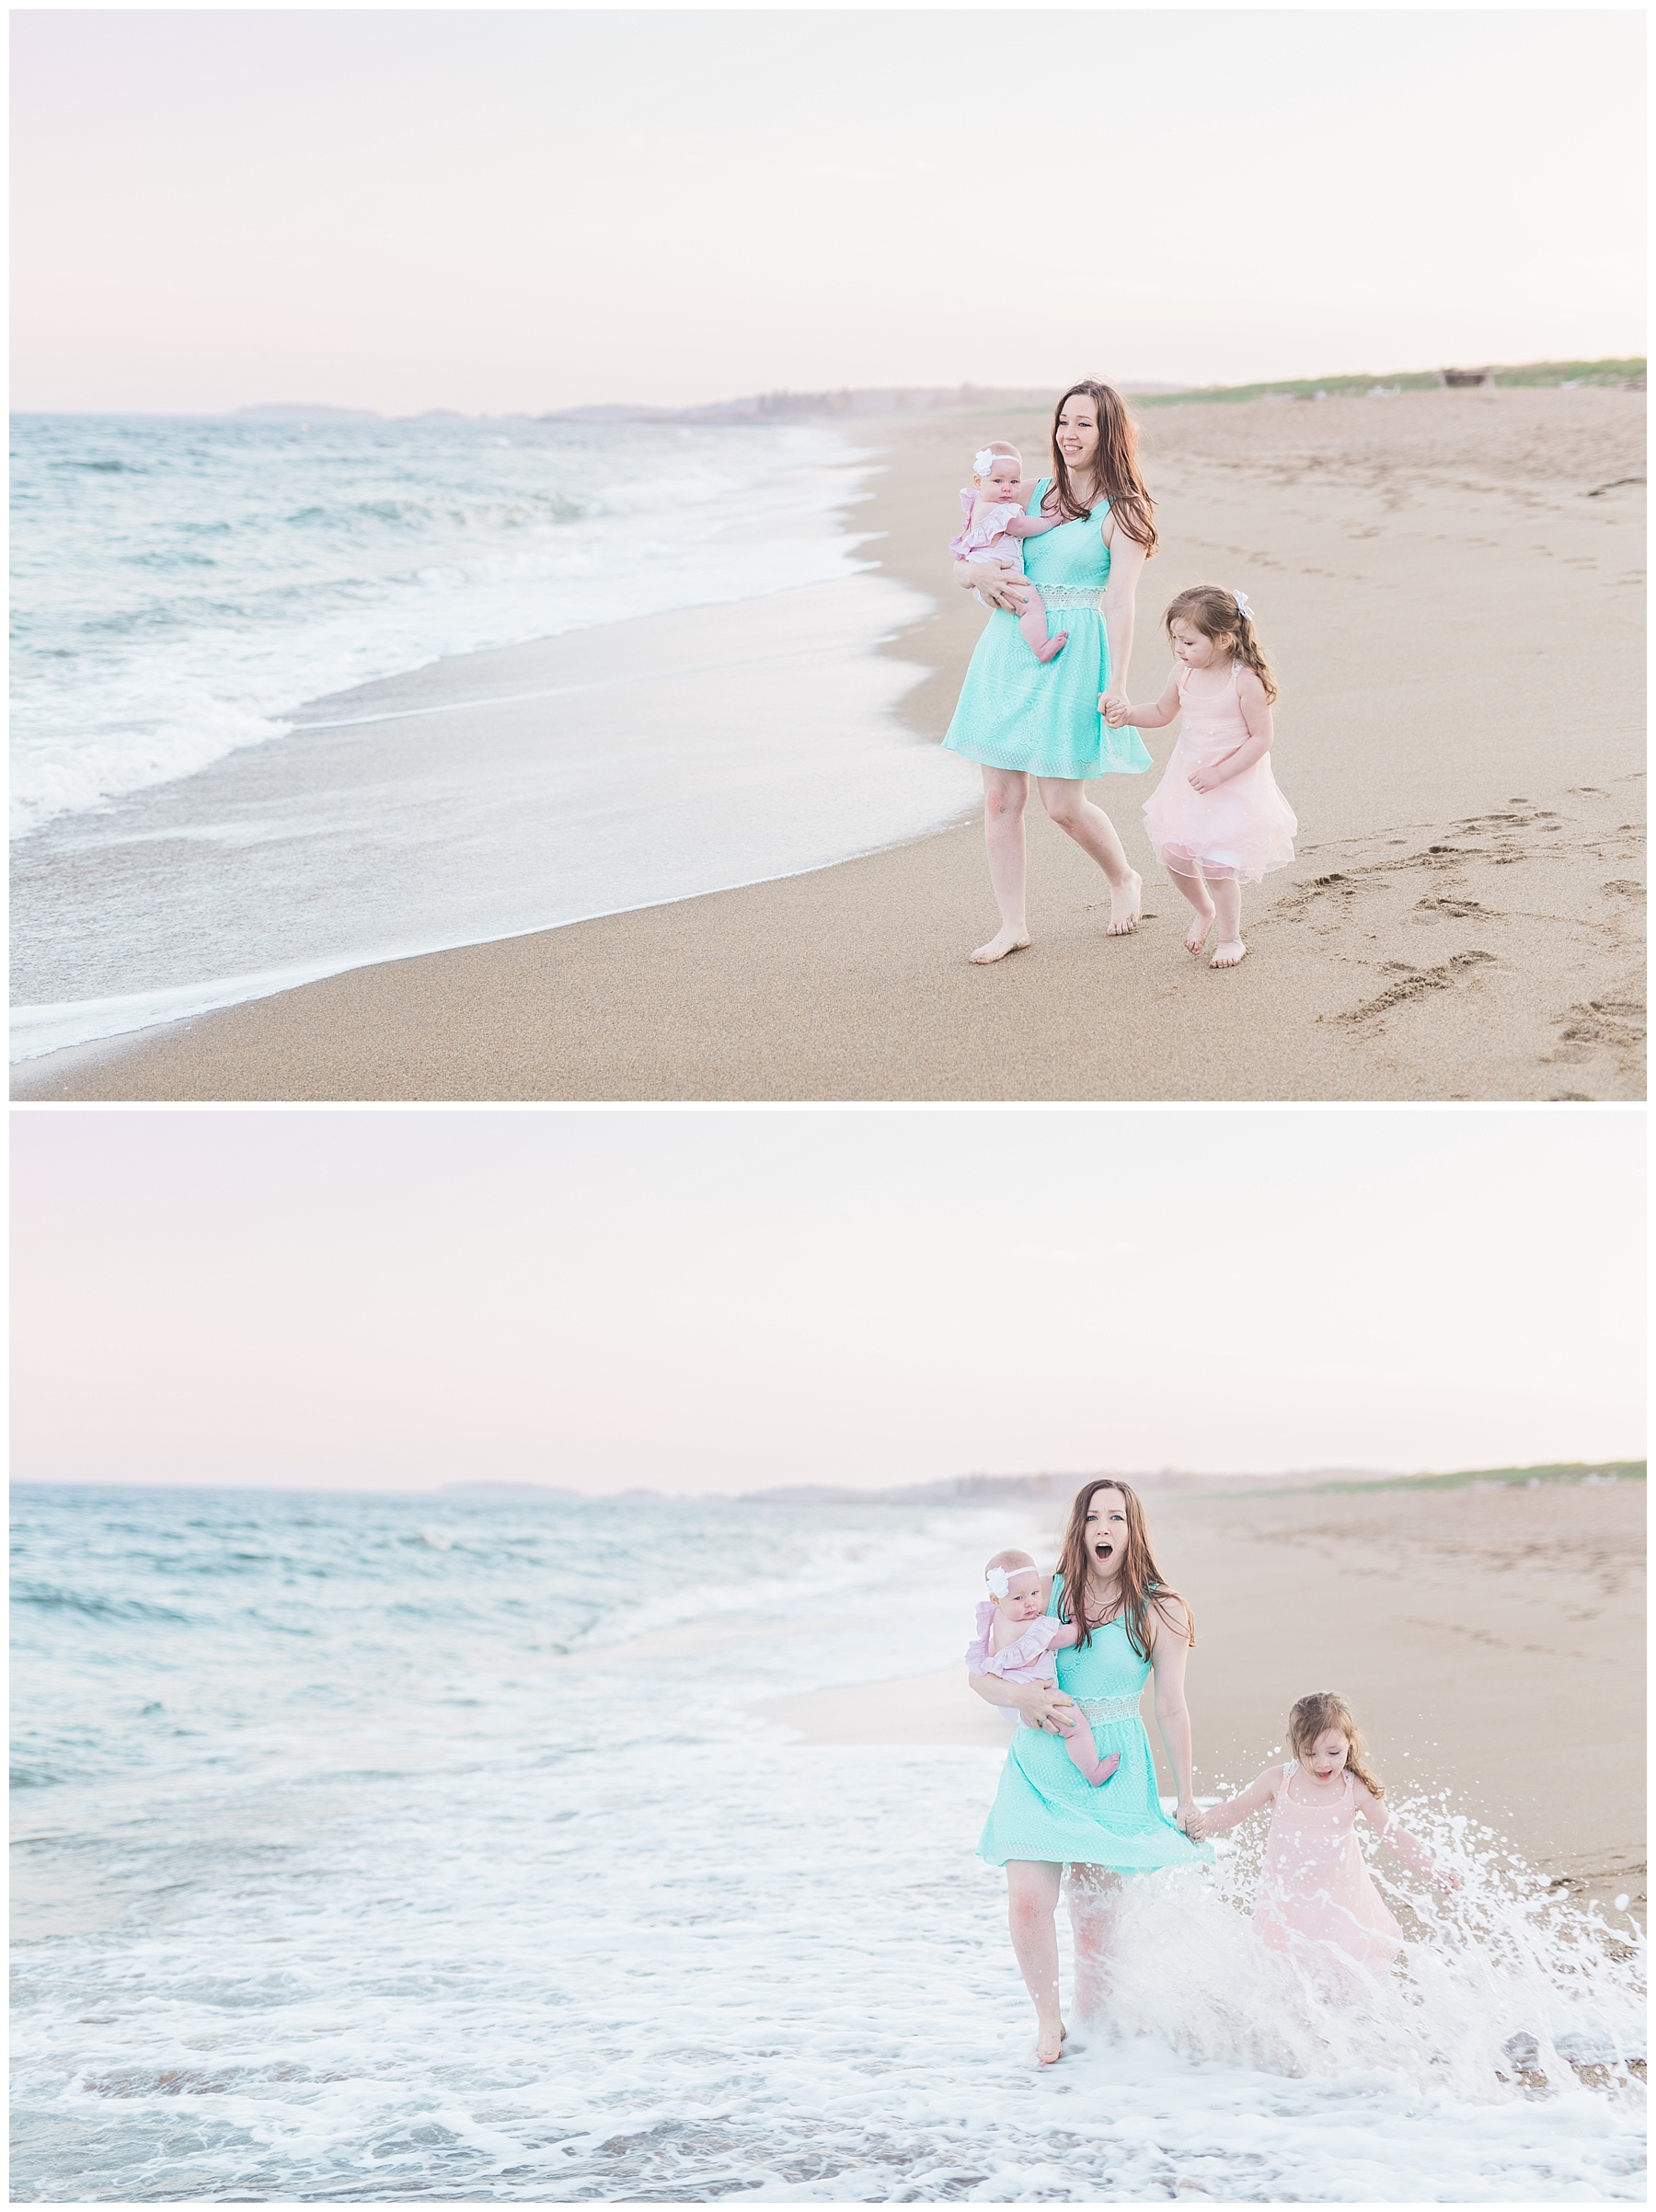 mommy and baby standing on the beach for a mommy and me session with her daughter with toddler and waves splashing